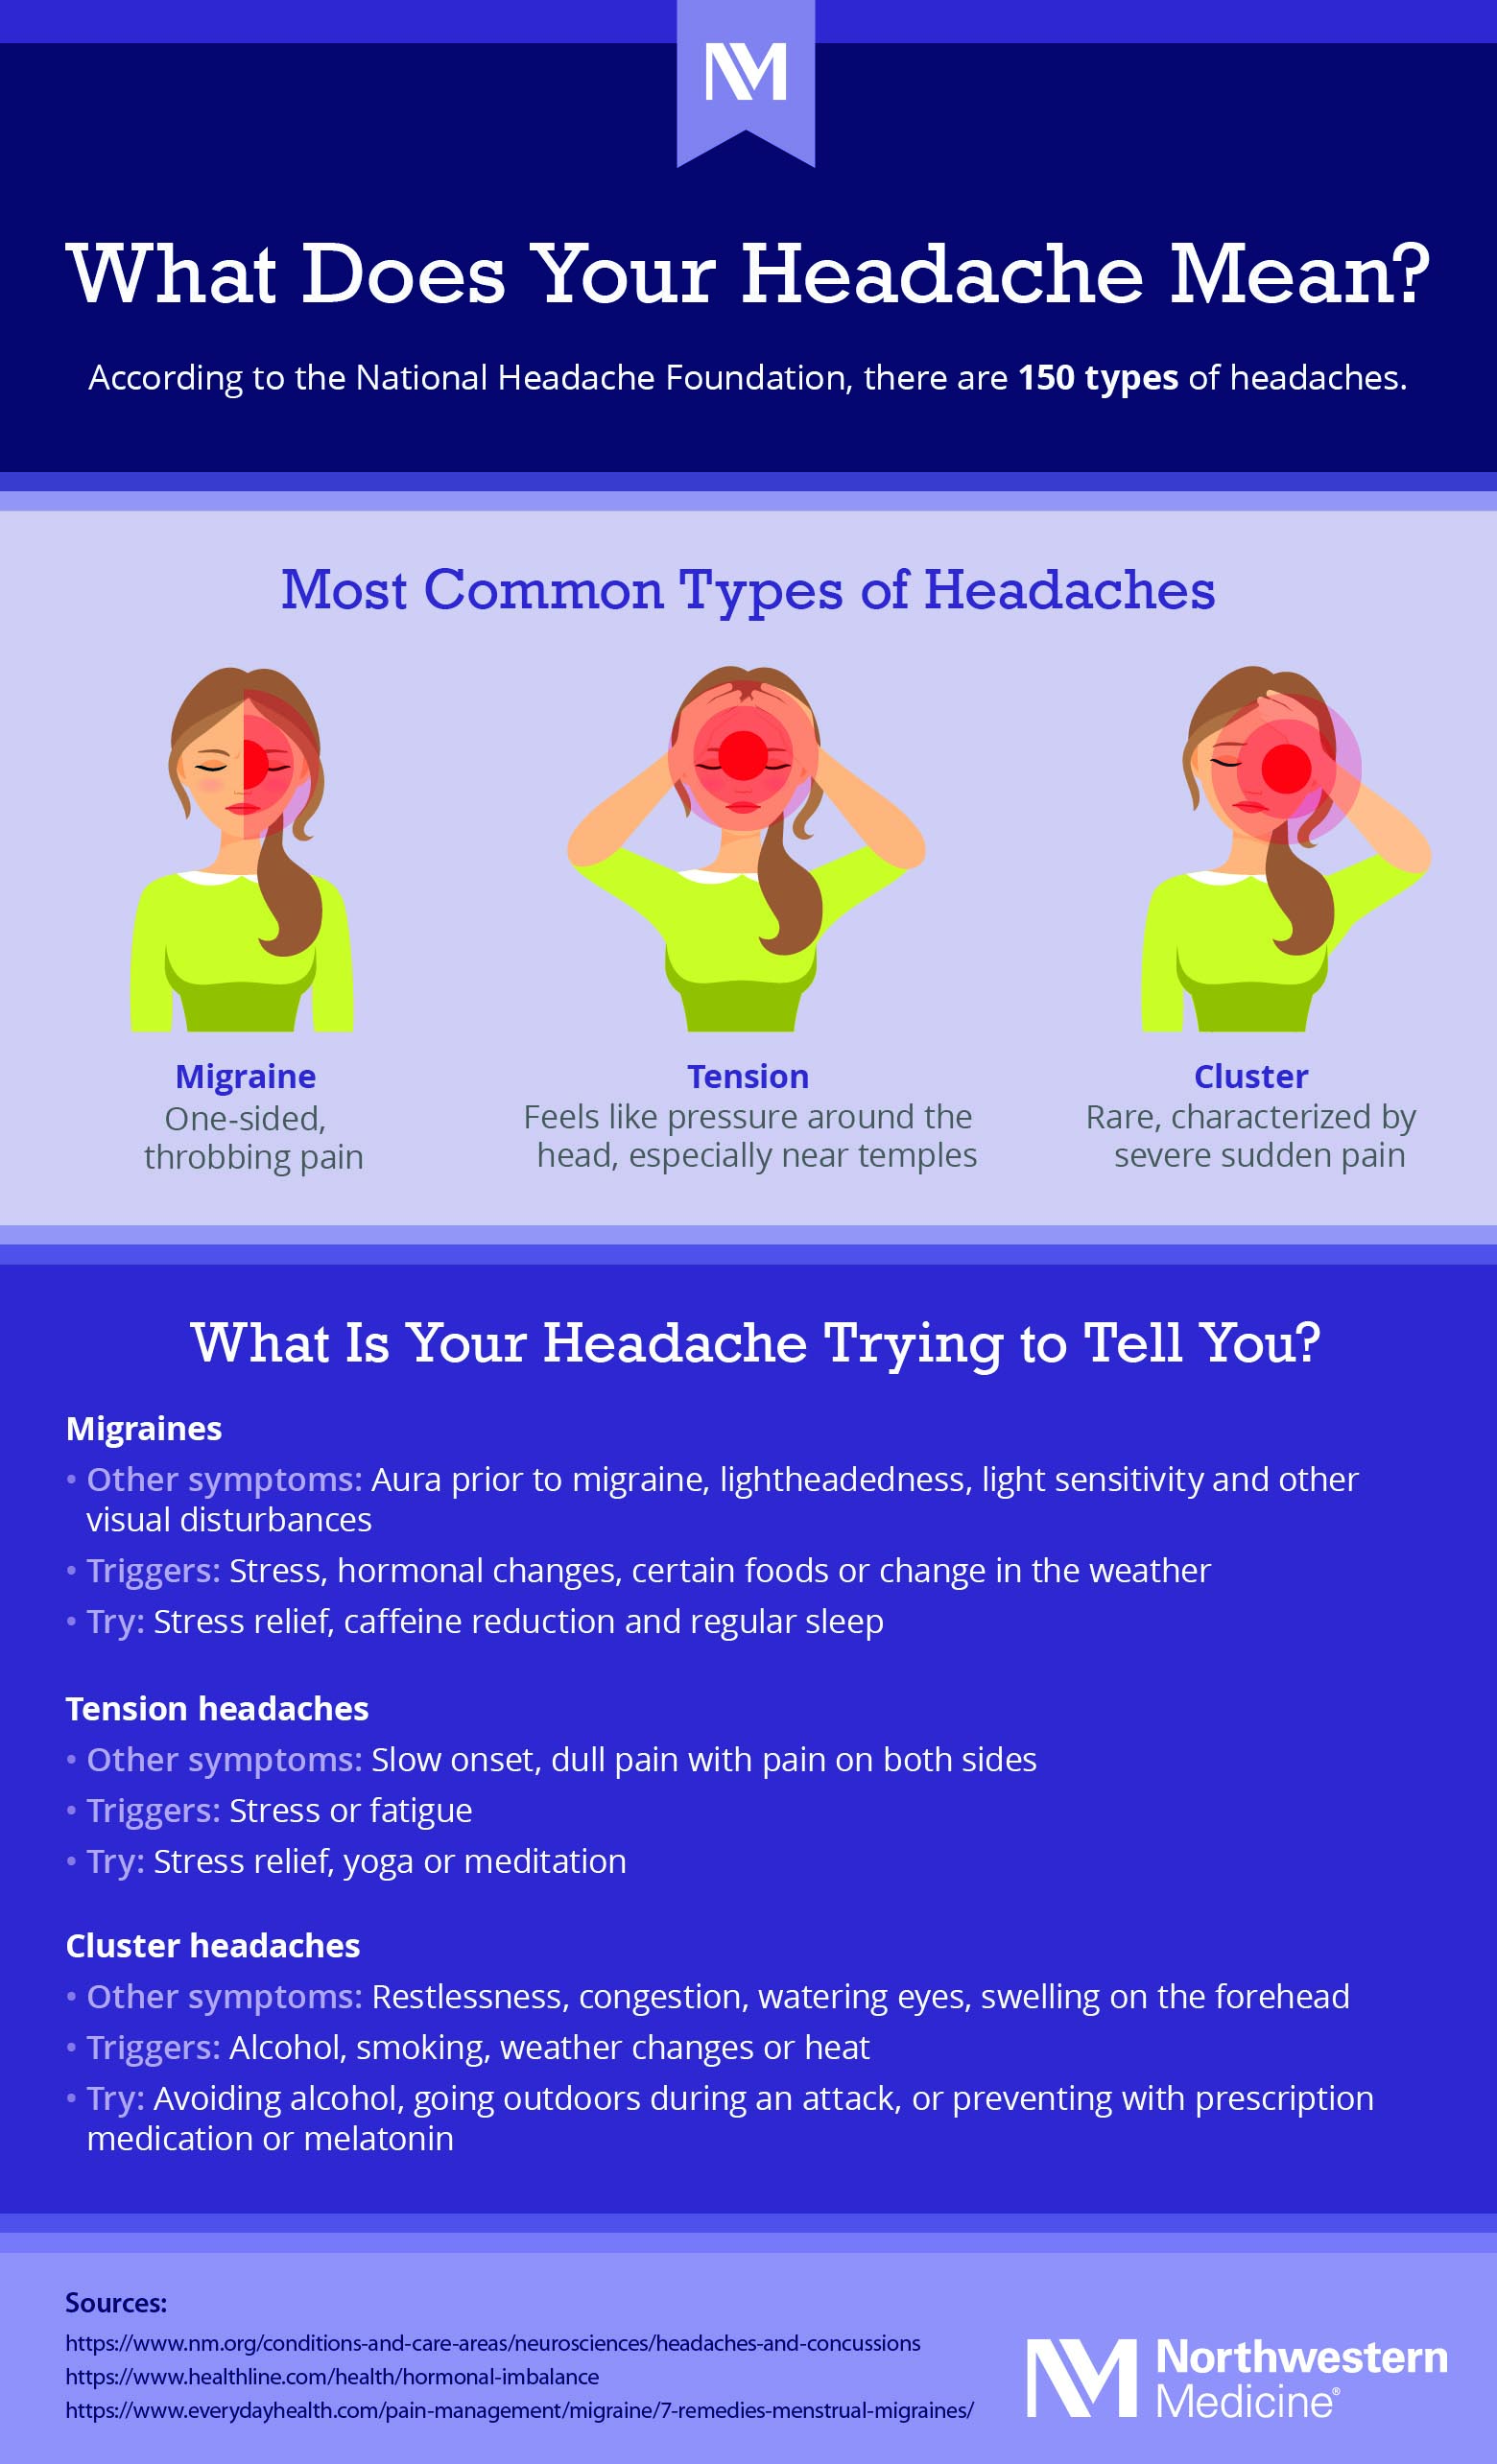 What Does Your Headache Mean